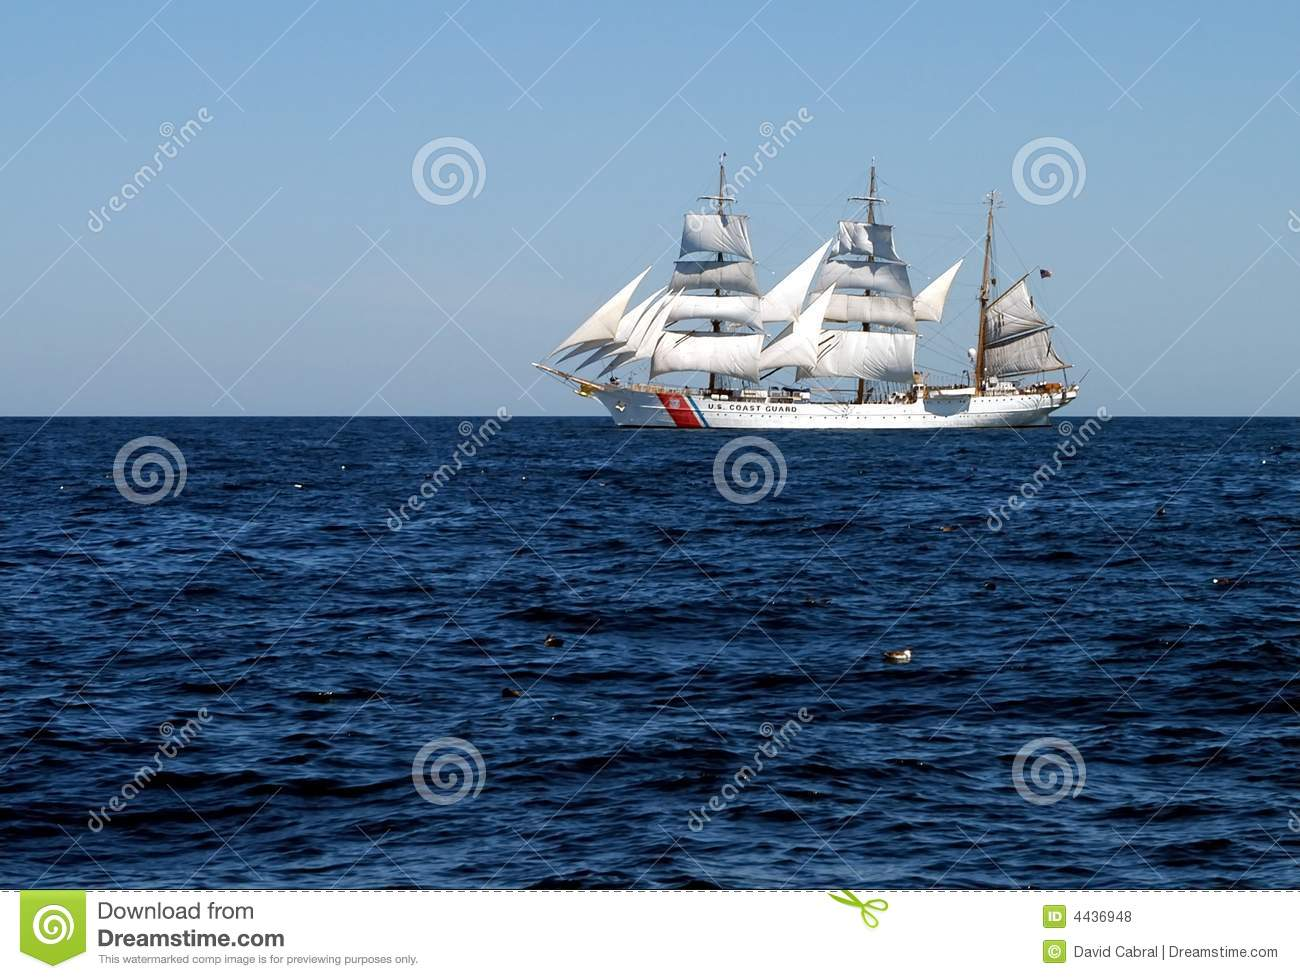 Drie masted schoener